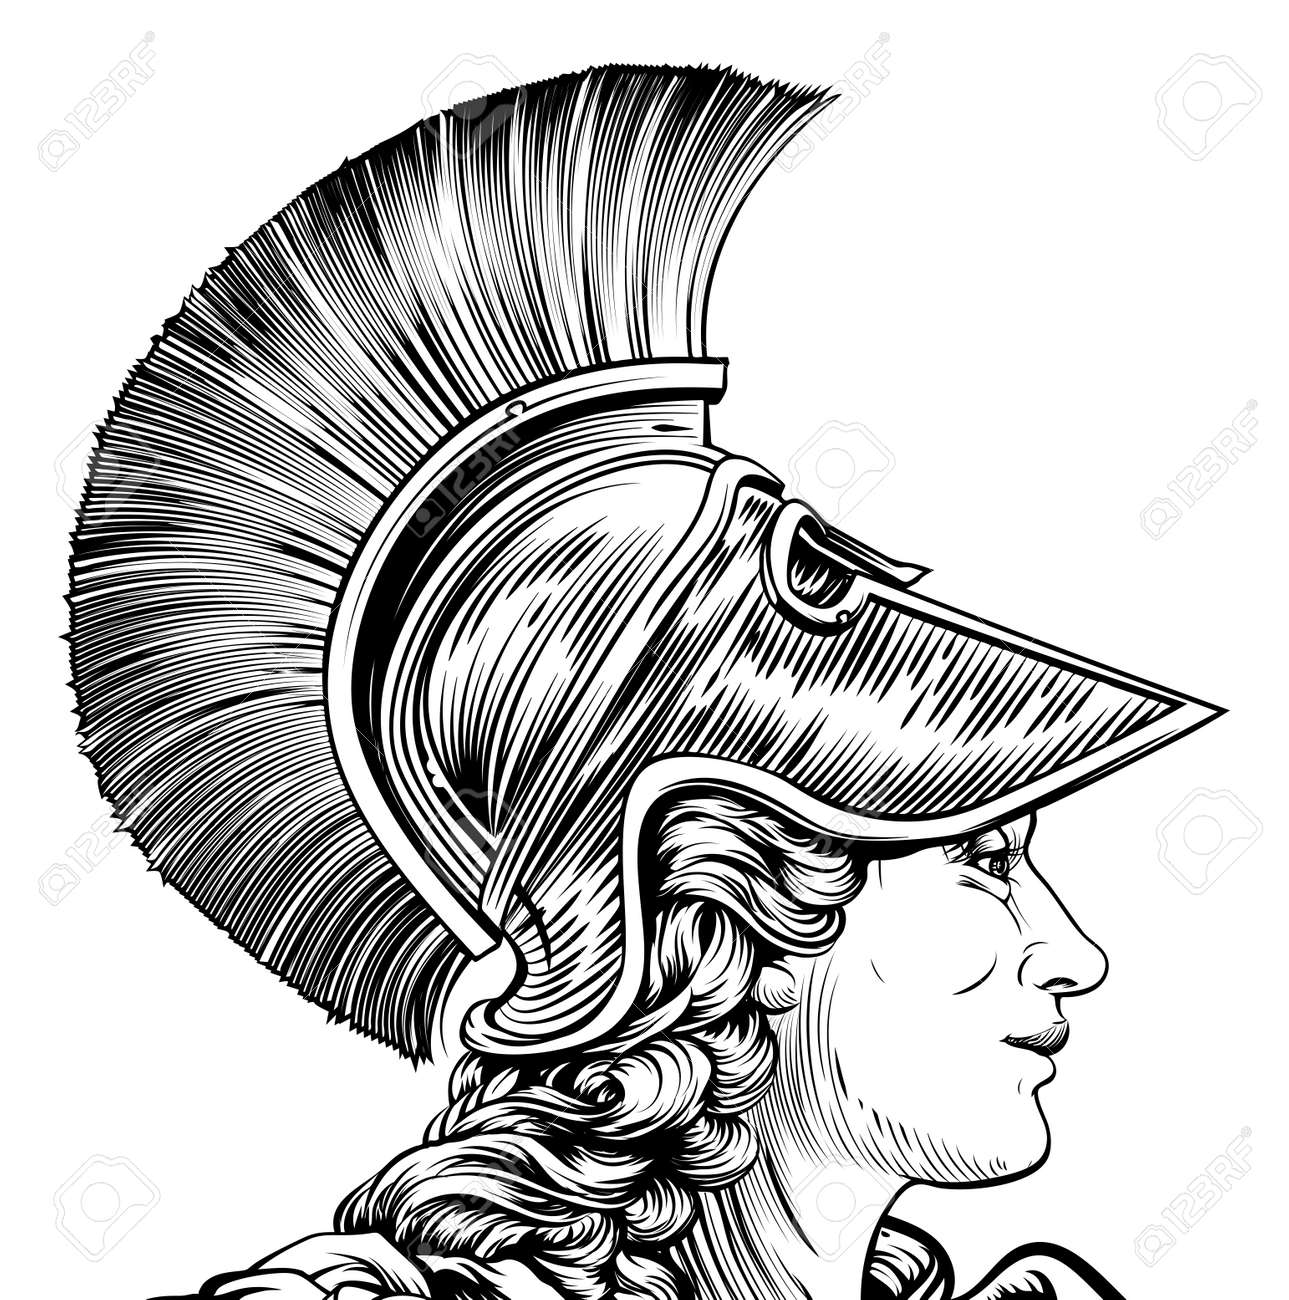 153 greek goddess athena stock vector illustration and royalty an ancient greek warrior woman in vintage style possible athena hera or britannia biocorpaavc